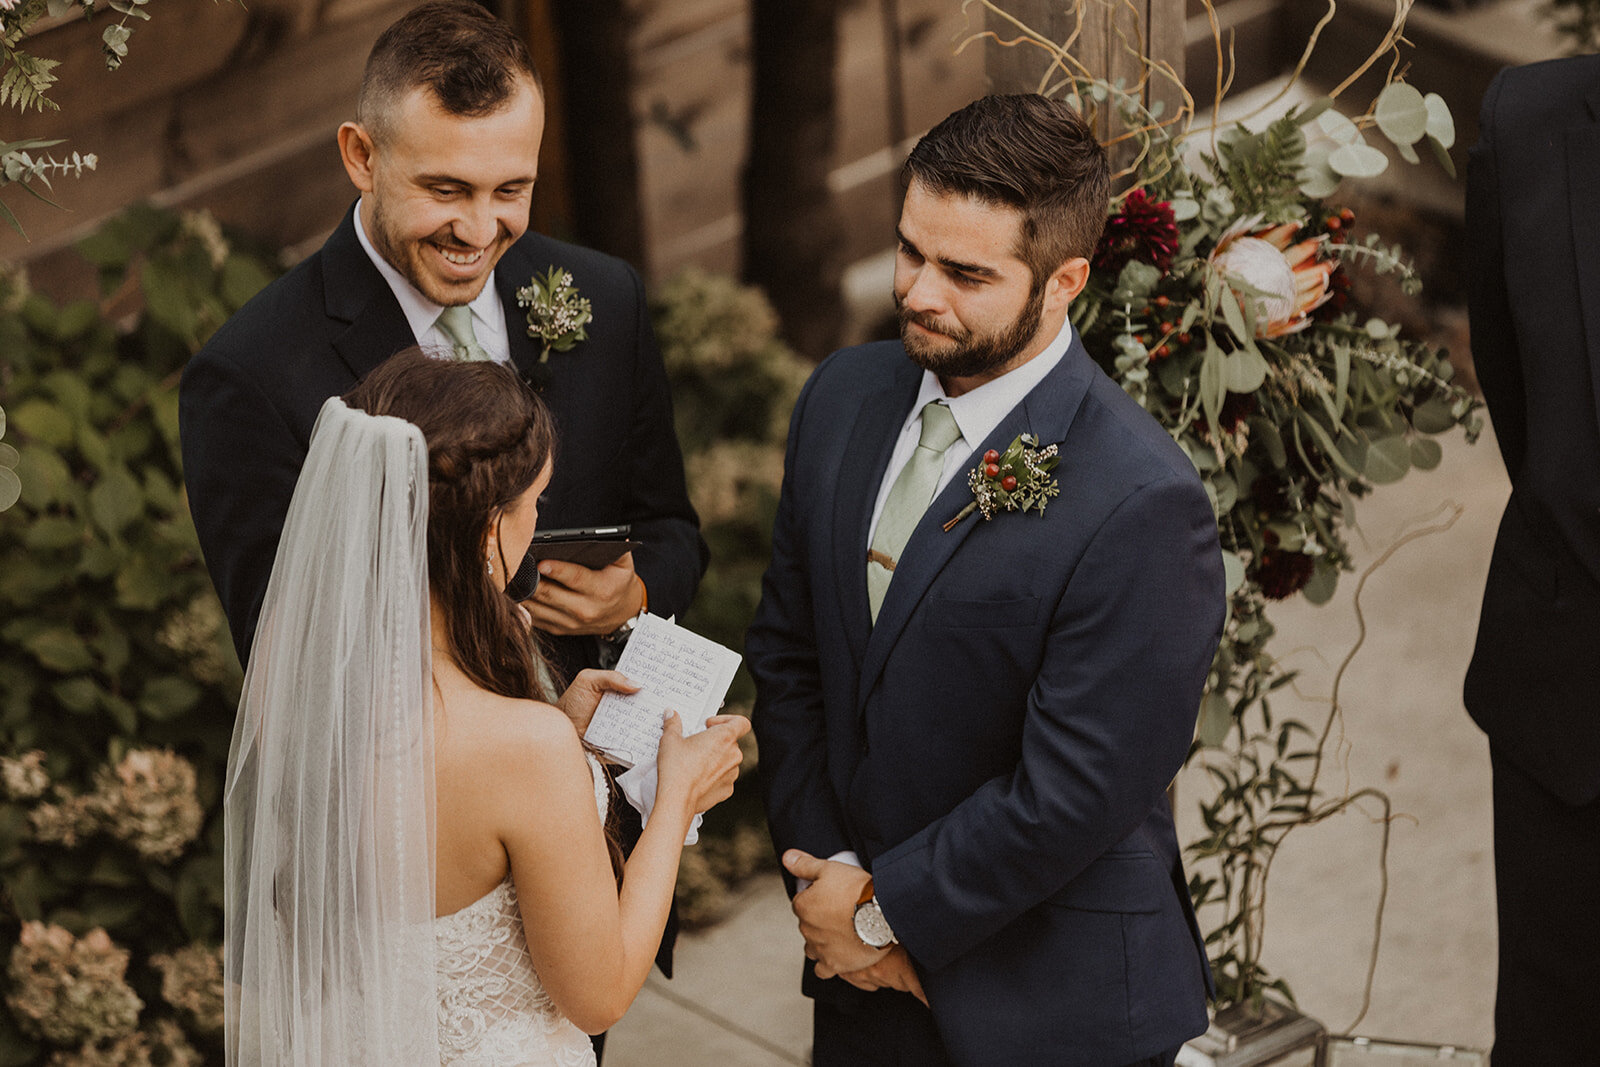 10 Tips to Write Your Own Vows